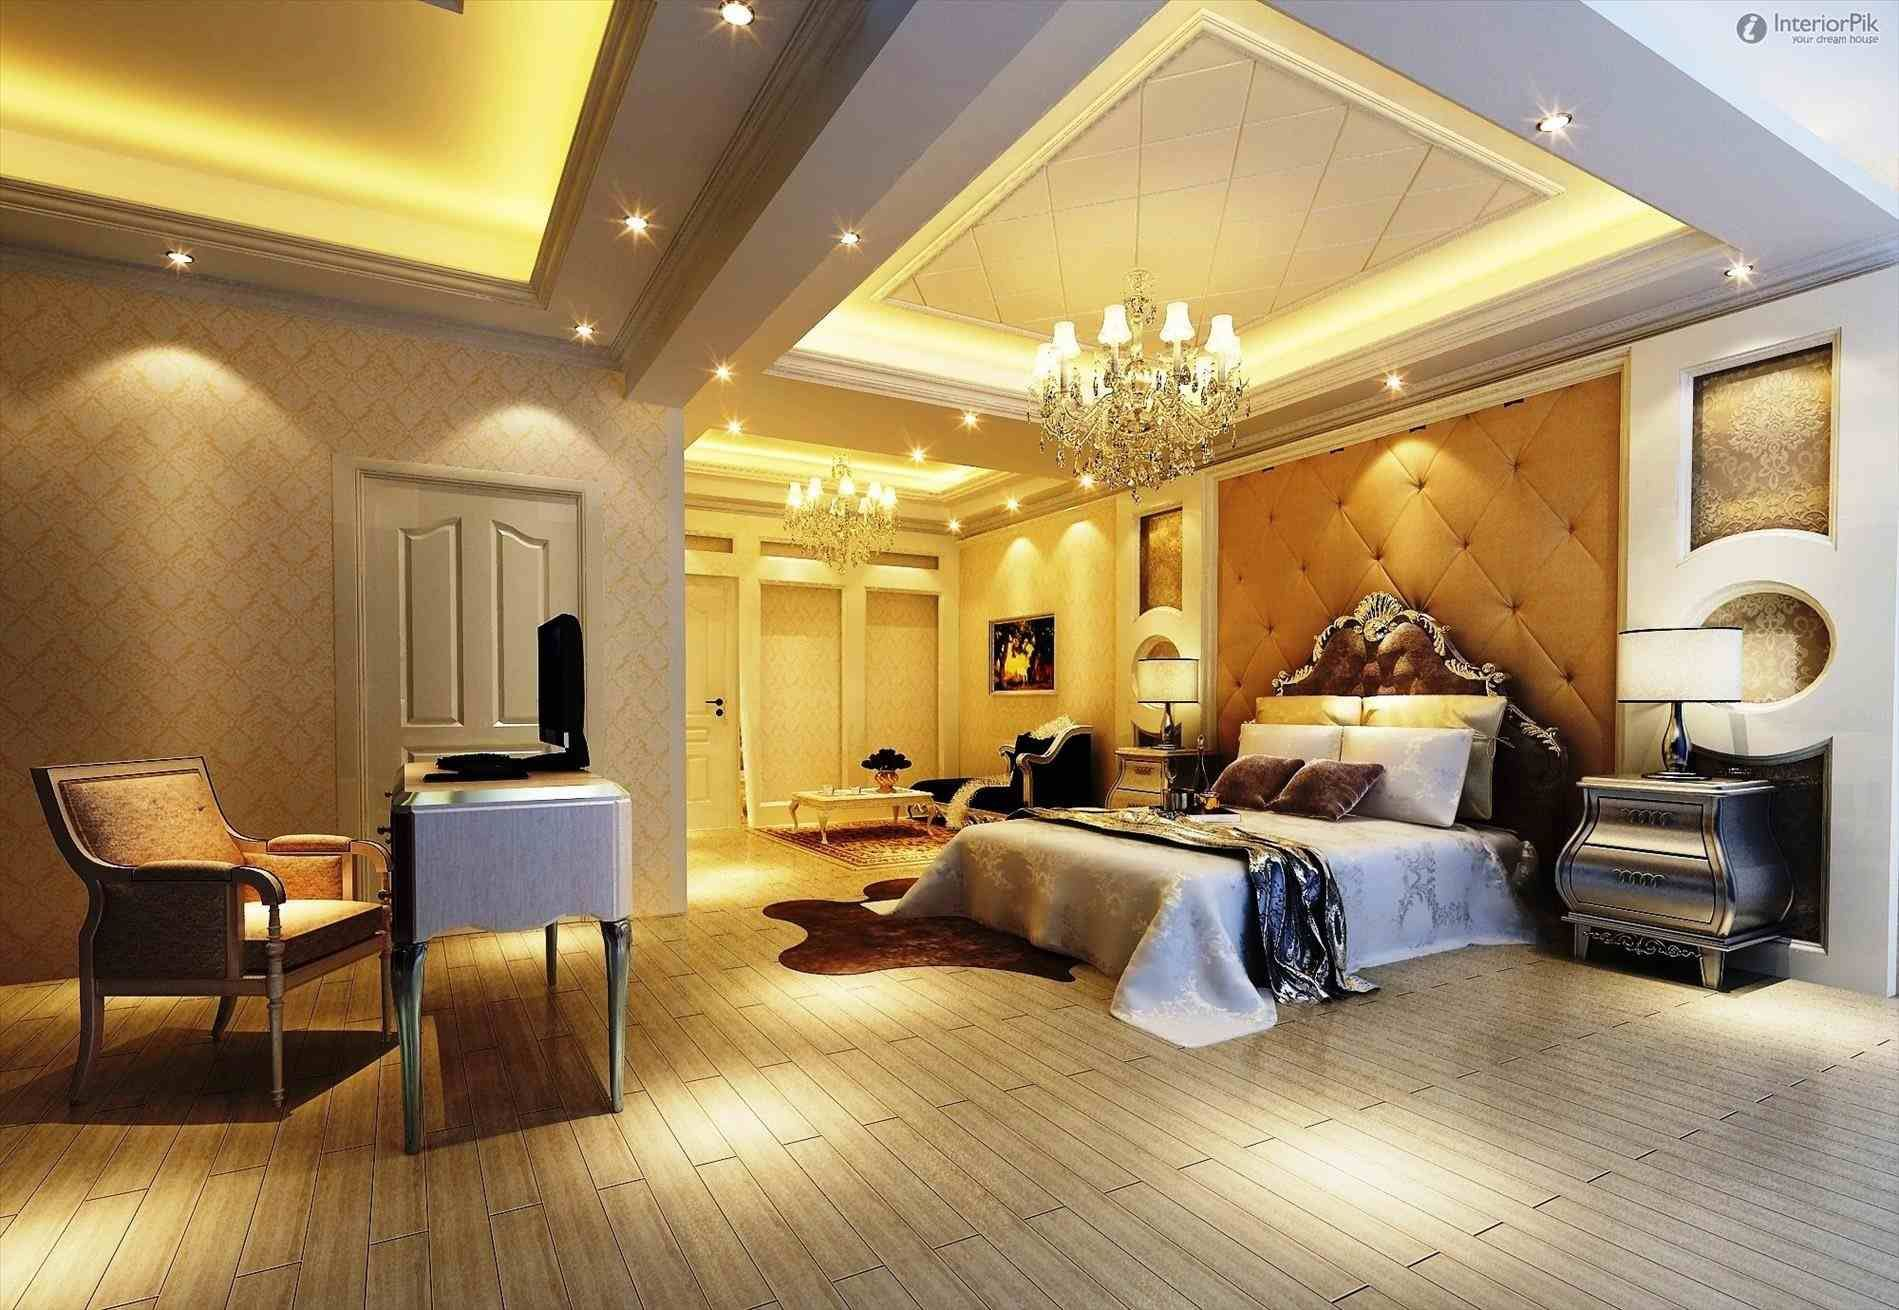 Bobayule Com Bobayule On Budget Ideas Huge Master Bedroom Luxury Bedroom Master Master Bedroom Design